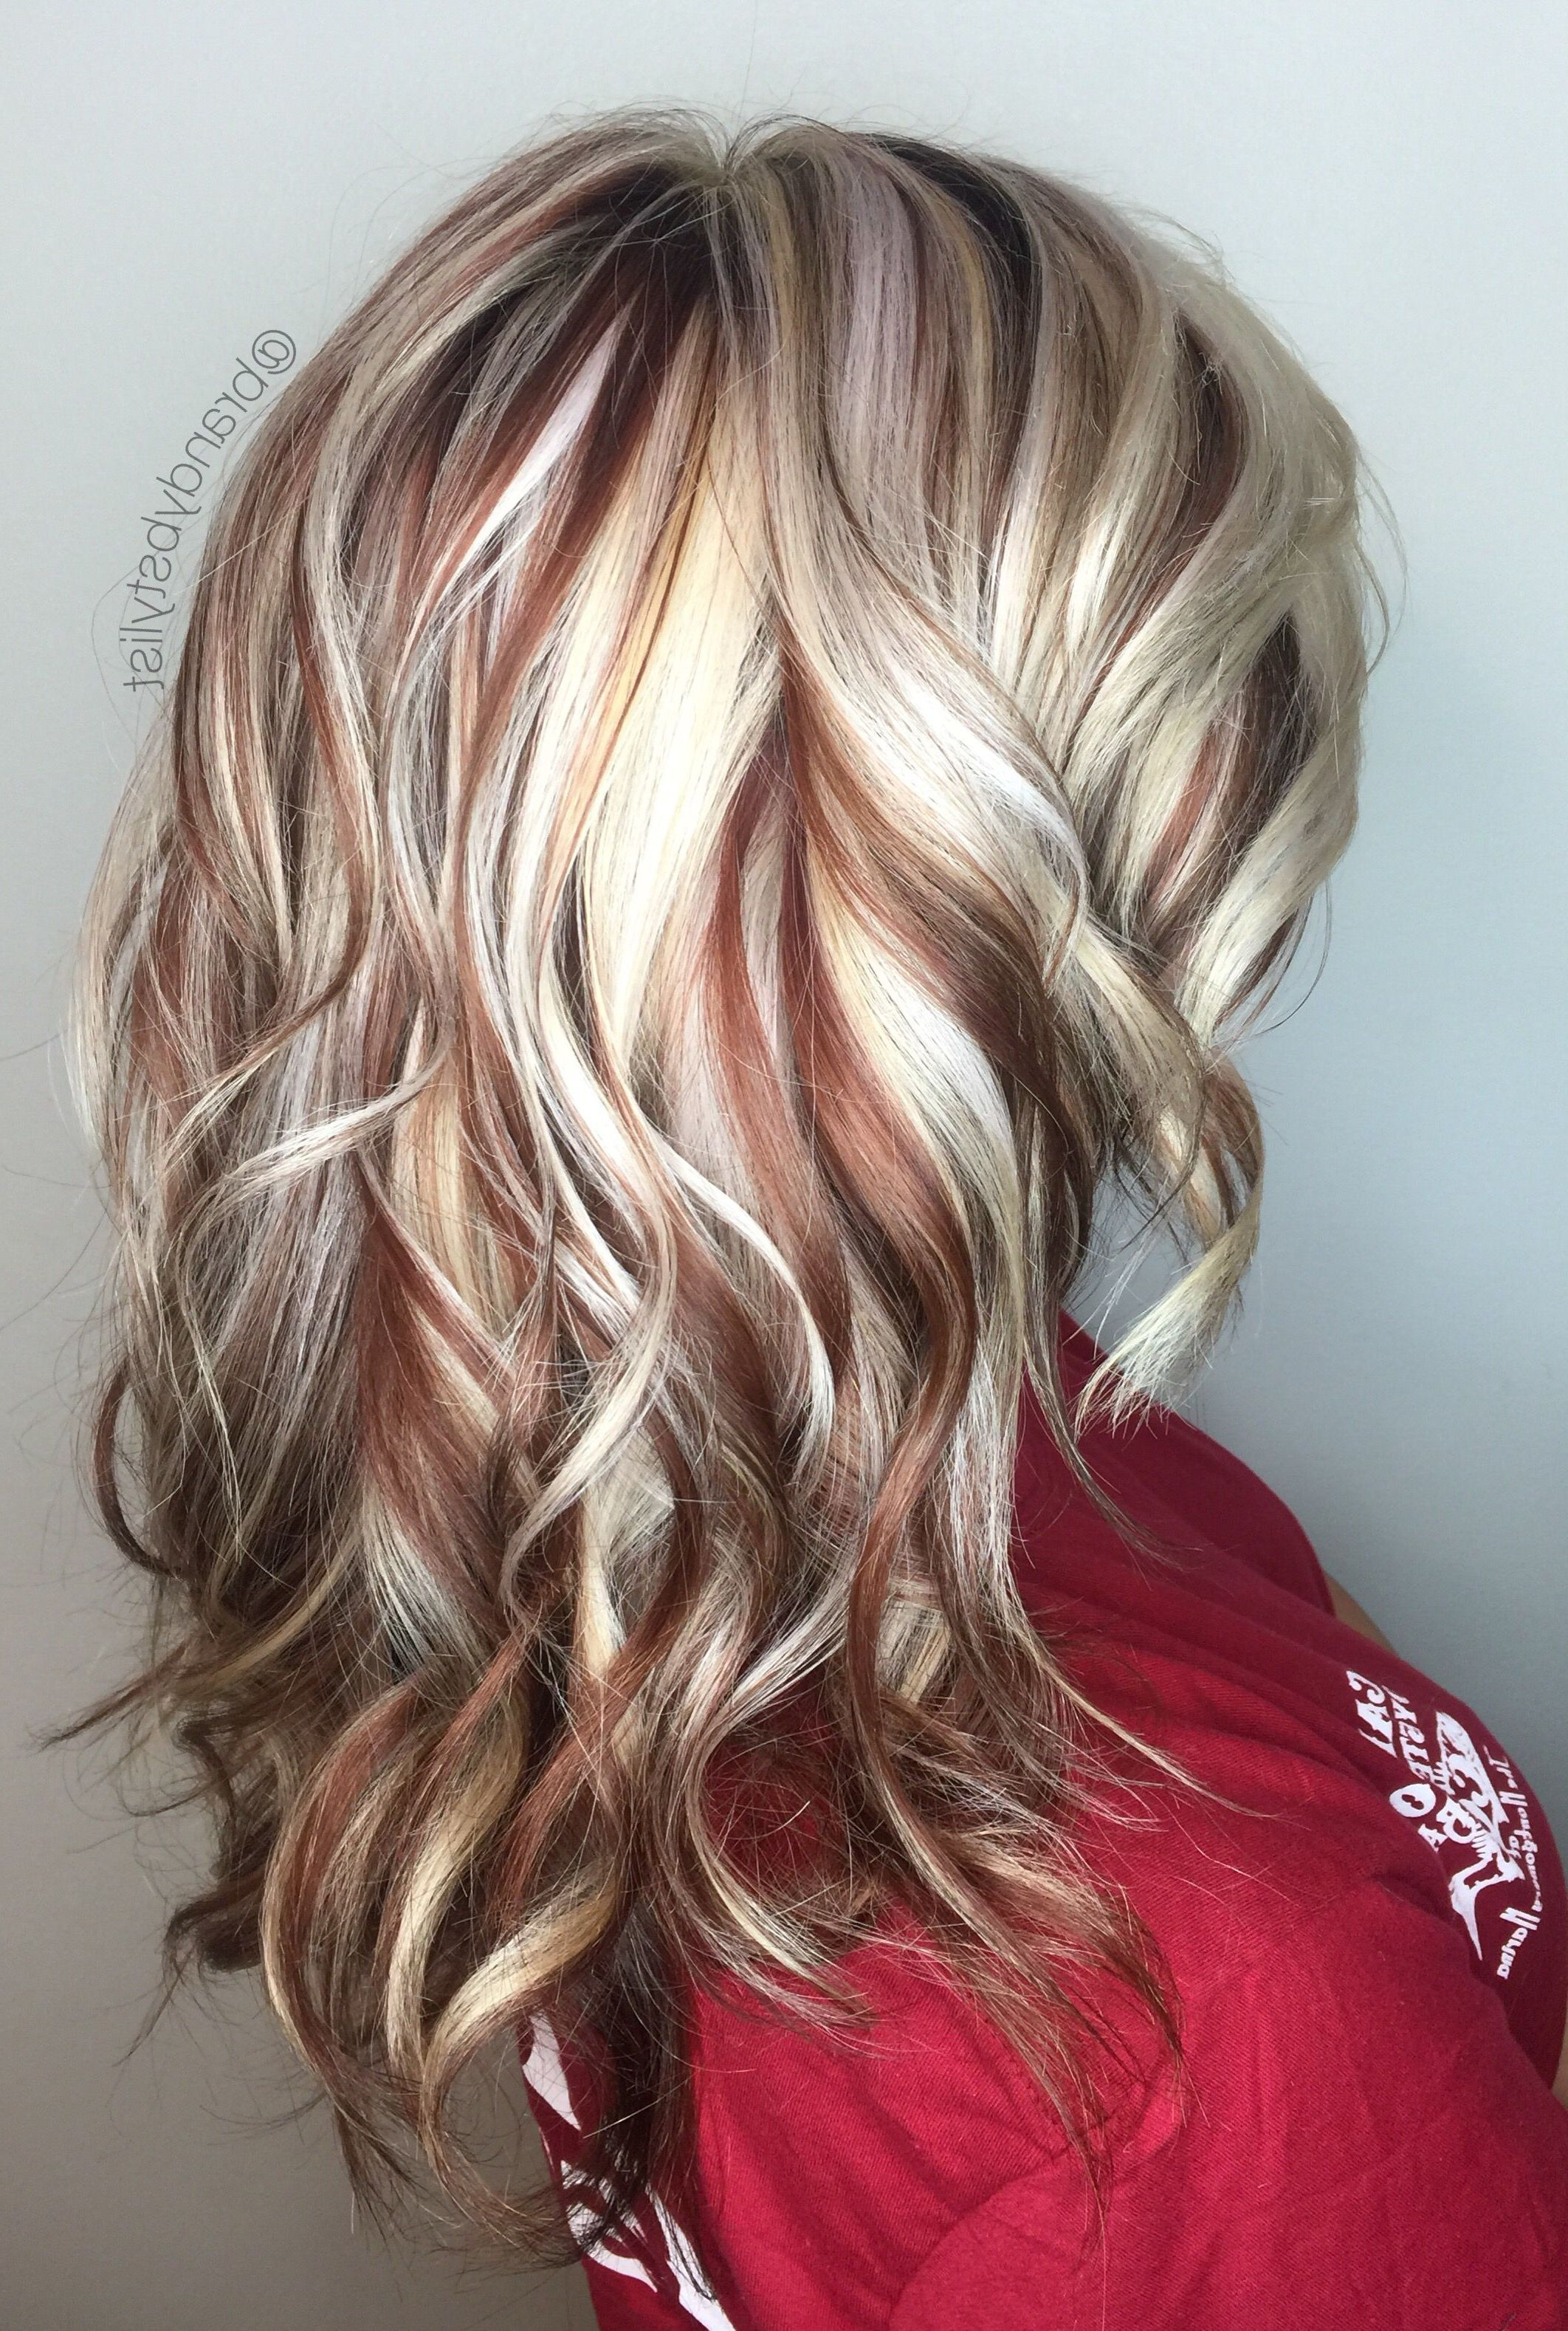 Pin By Louise Thomson On Haare In 2020 Blonde Brown Hair Color Blonde Hair Shades Blonde Hair With Highlights